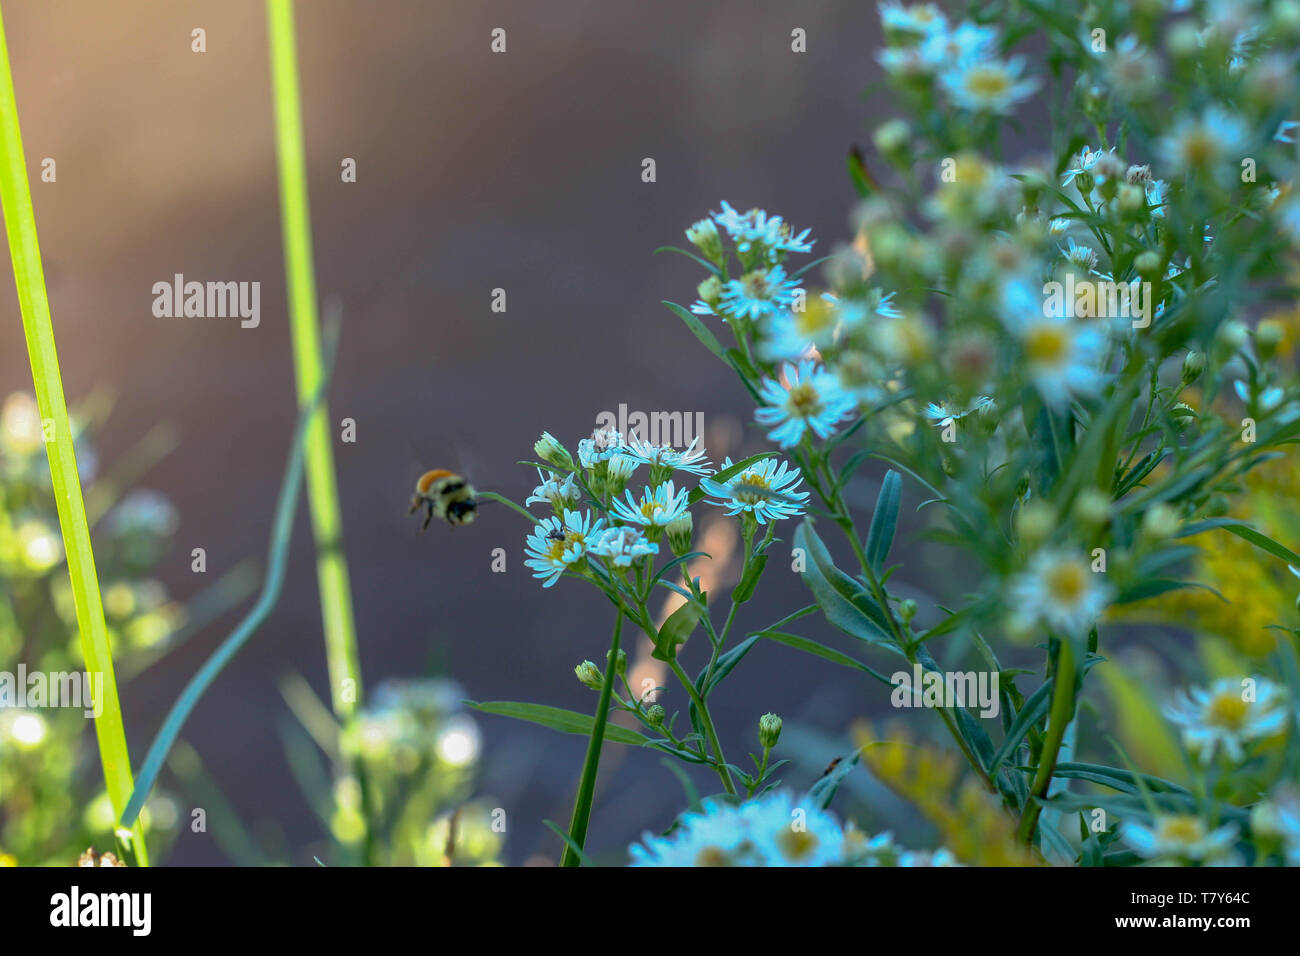 Bumble Bee and Flowers - Stock Image